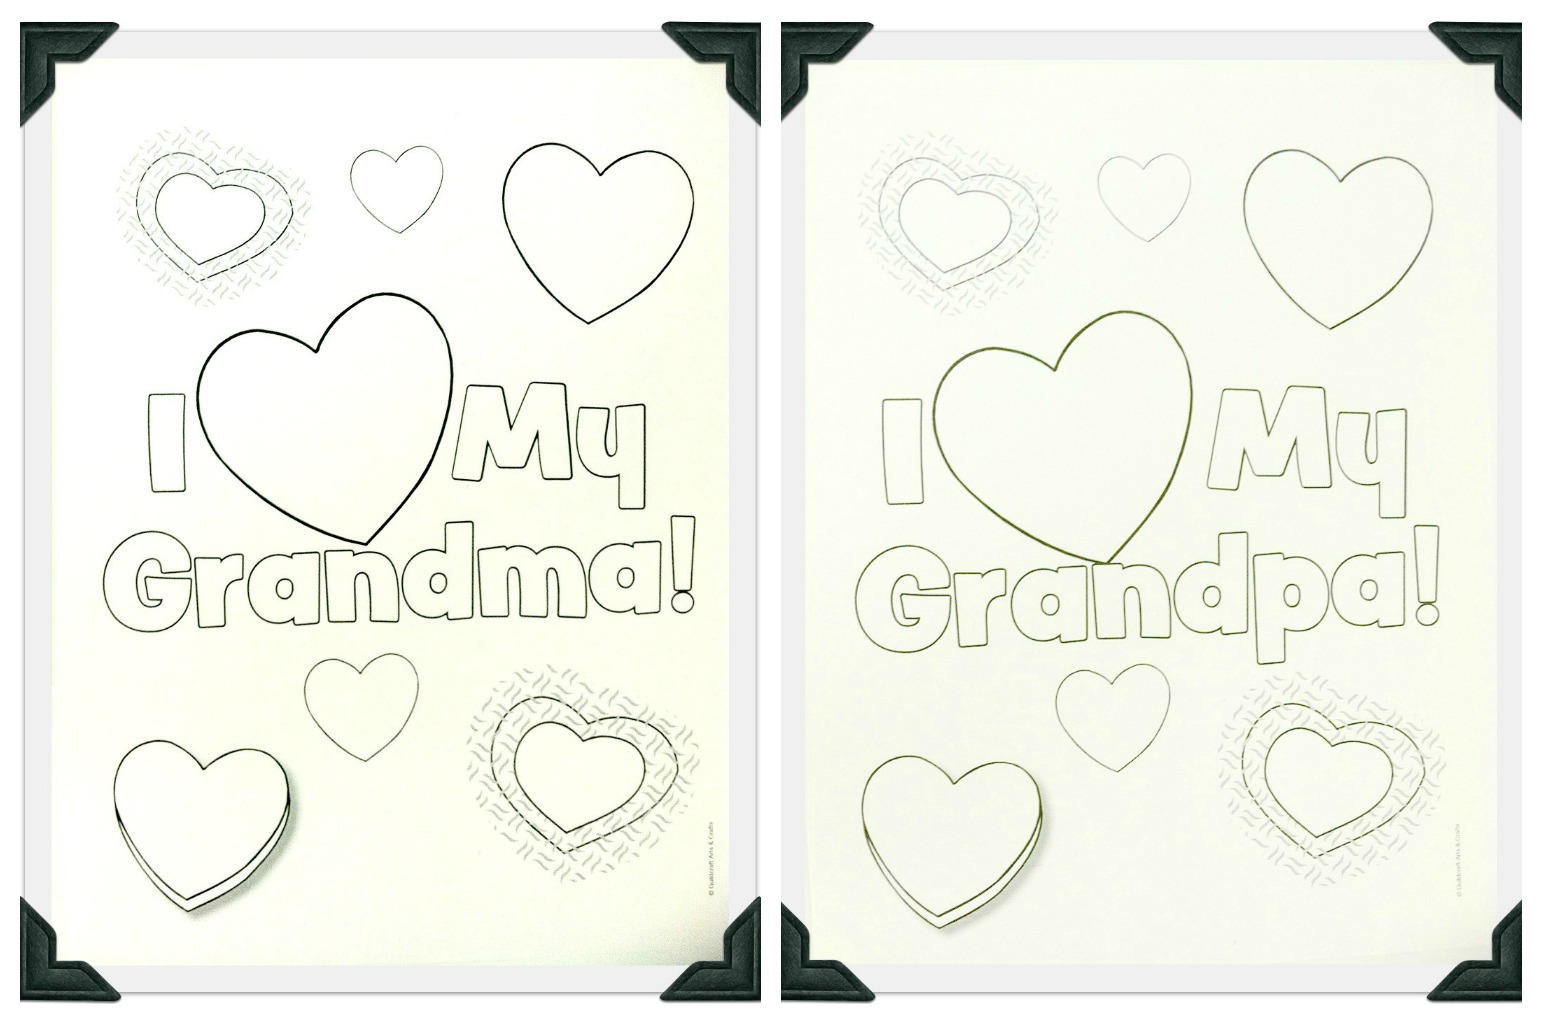 Happy grandparents day coloring pages 5 free printable coloring grandparents day coloring pages happy grandparents bookmarktalkfo Images